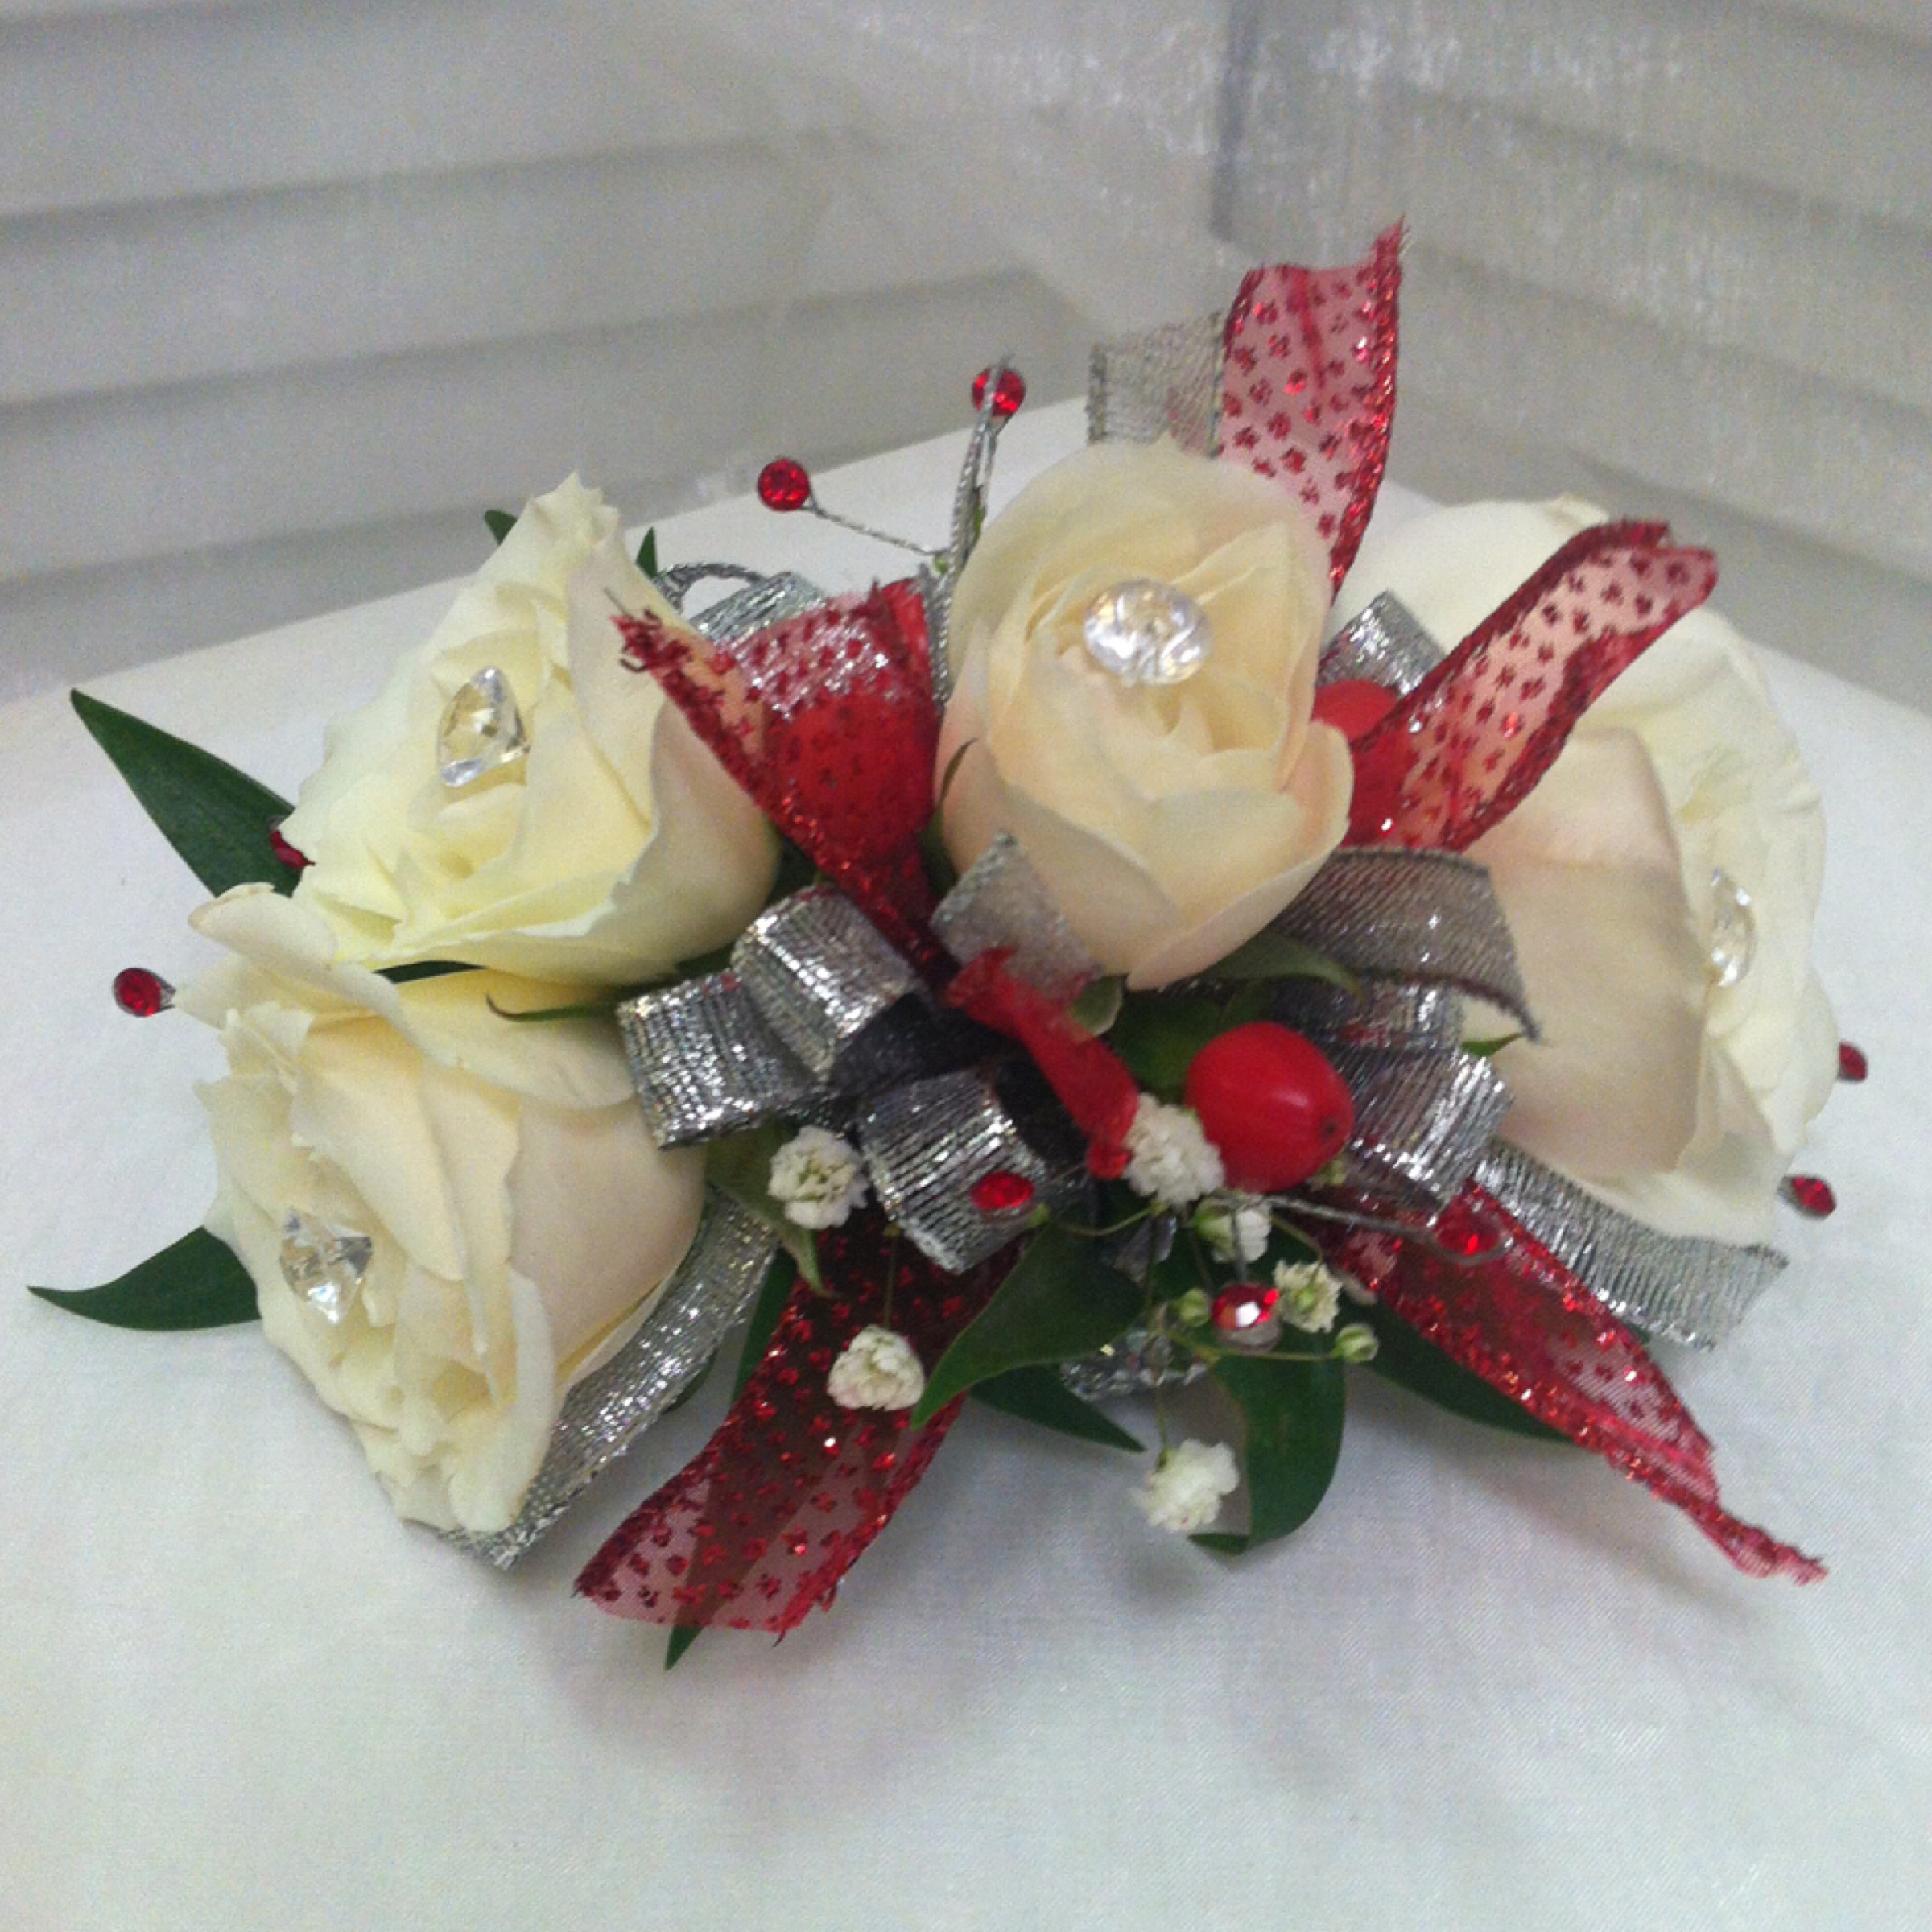 Plus Corsage (30) with Upgraded Bow (2) $32